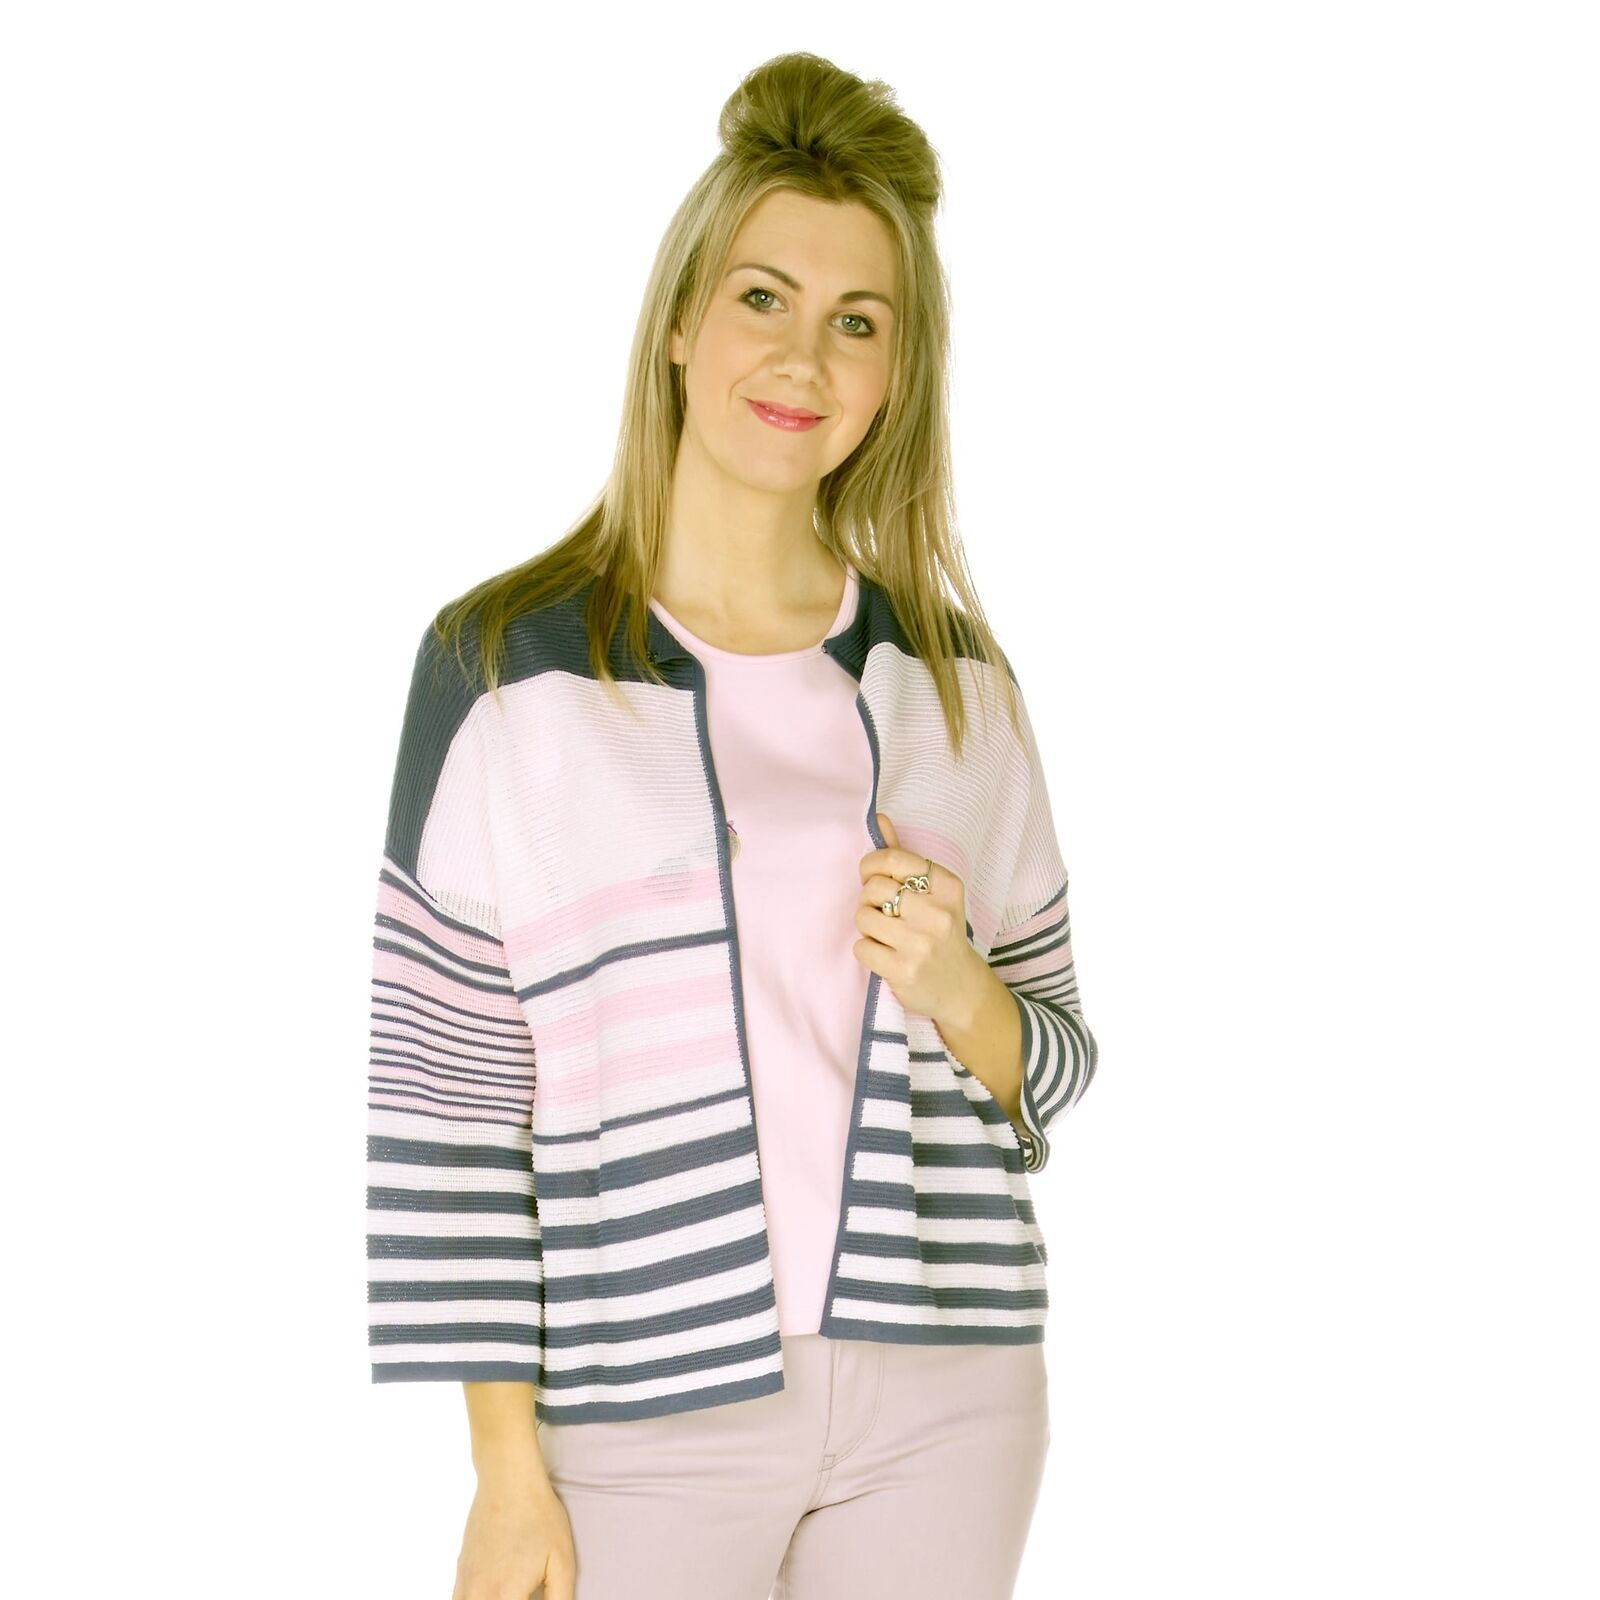 Emreco Cardigan Ashley, White with pink and navy, Fine Knit